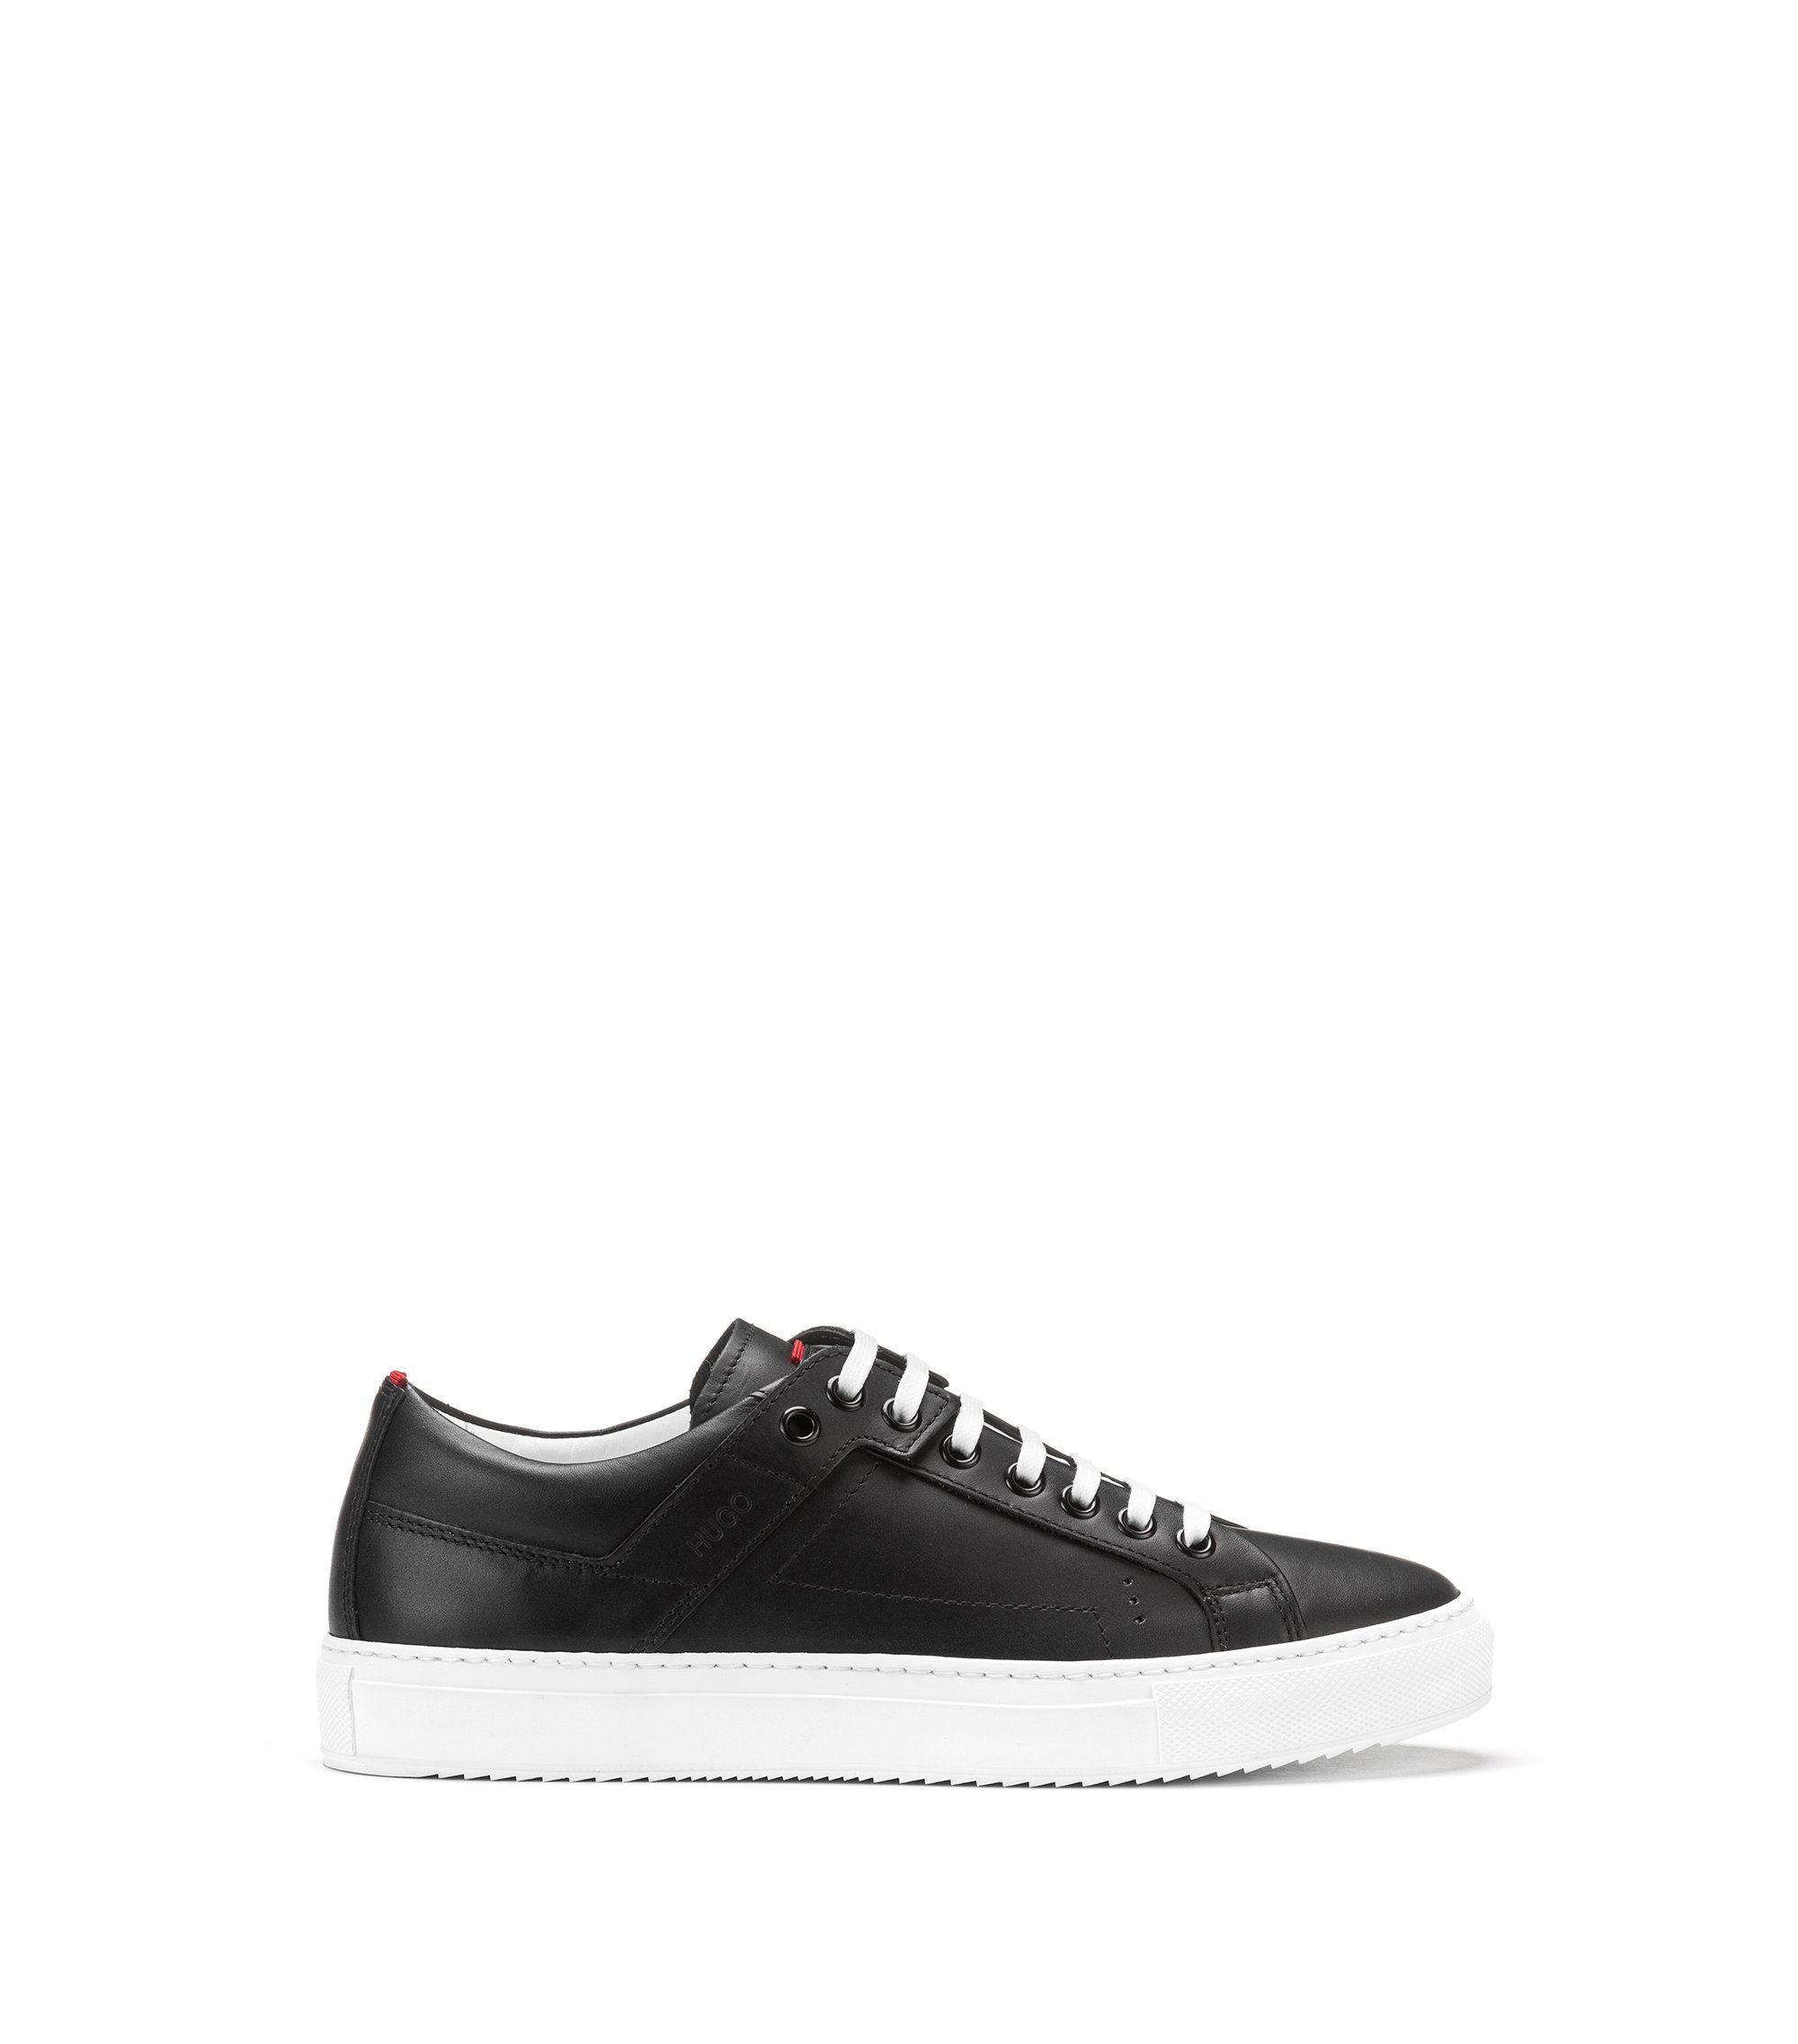 Low-top lace-up trainers in tumbled leather, Black